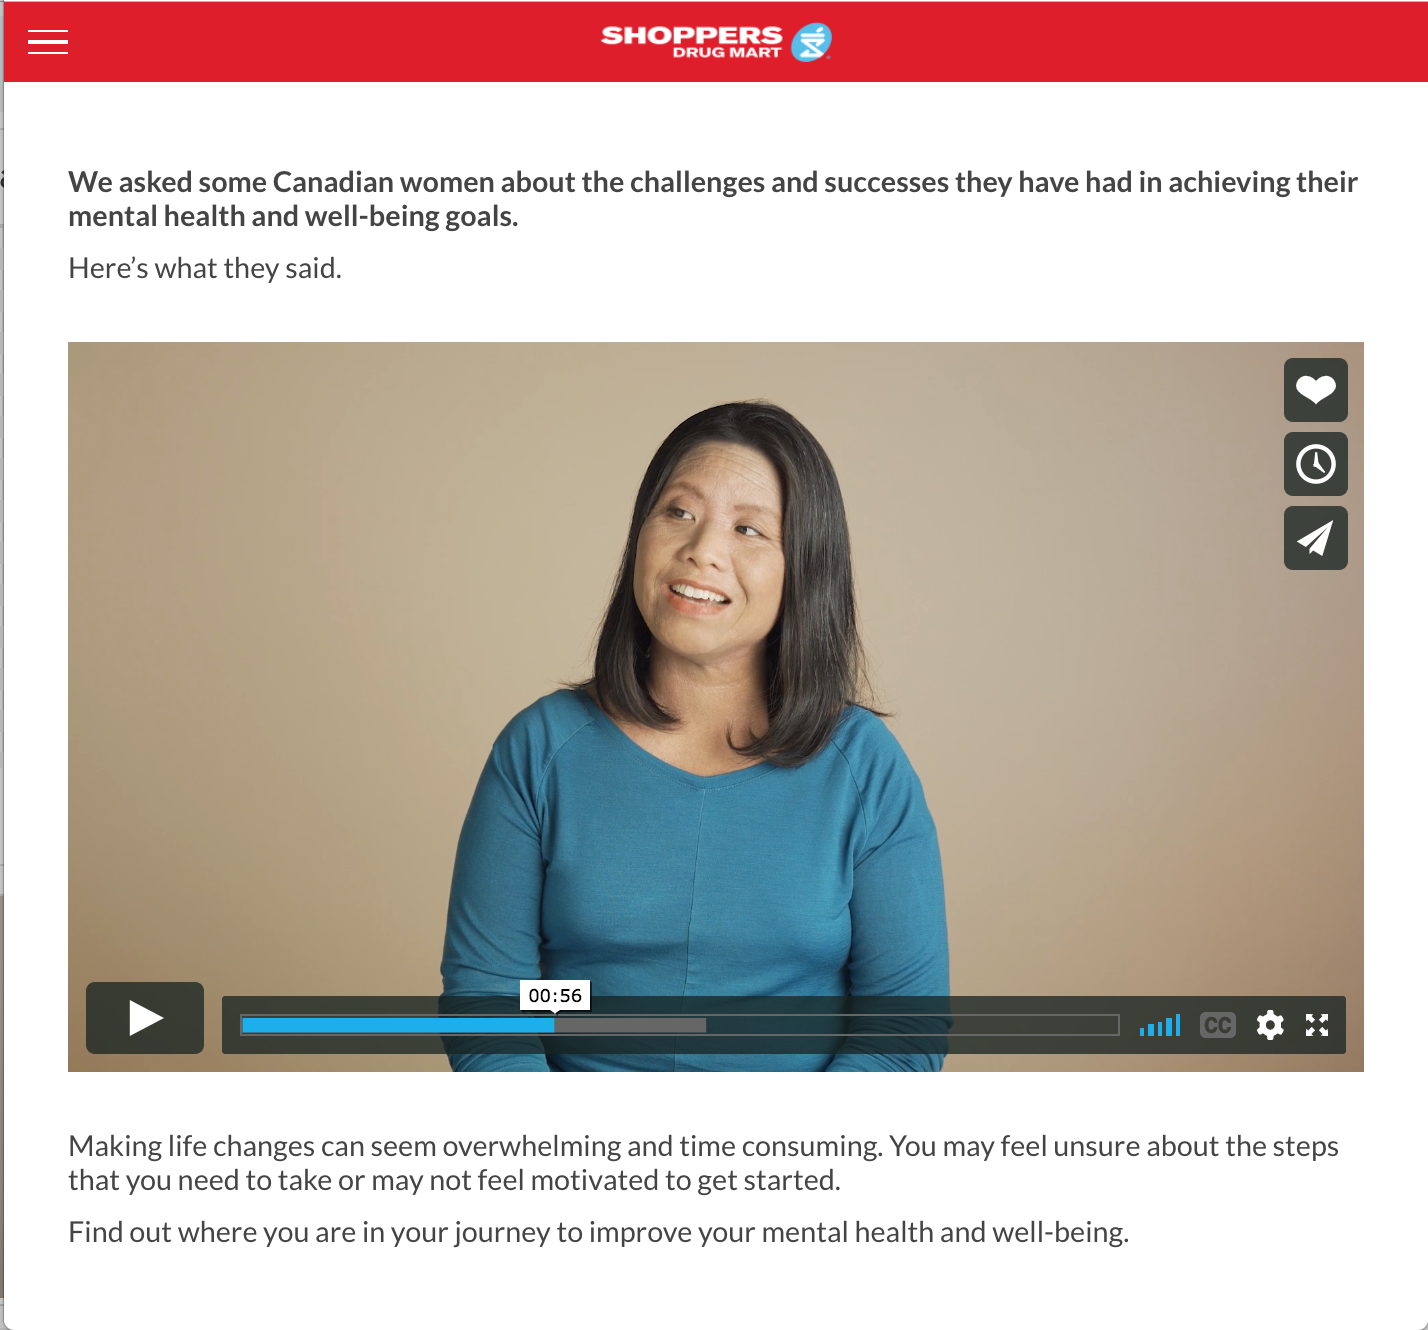 a short public service announcement with shoppers drug mart on what self care and mental health looks like for women.